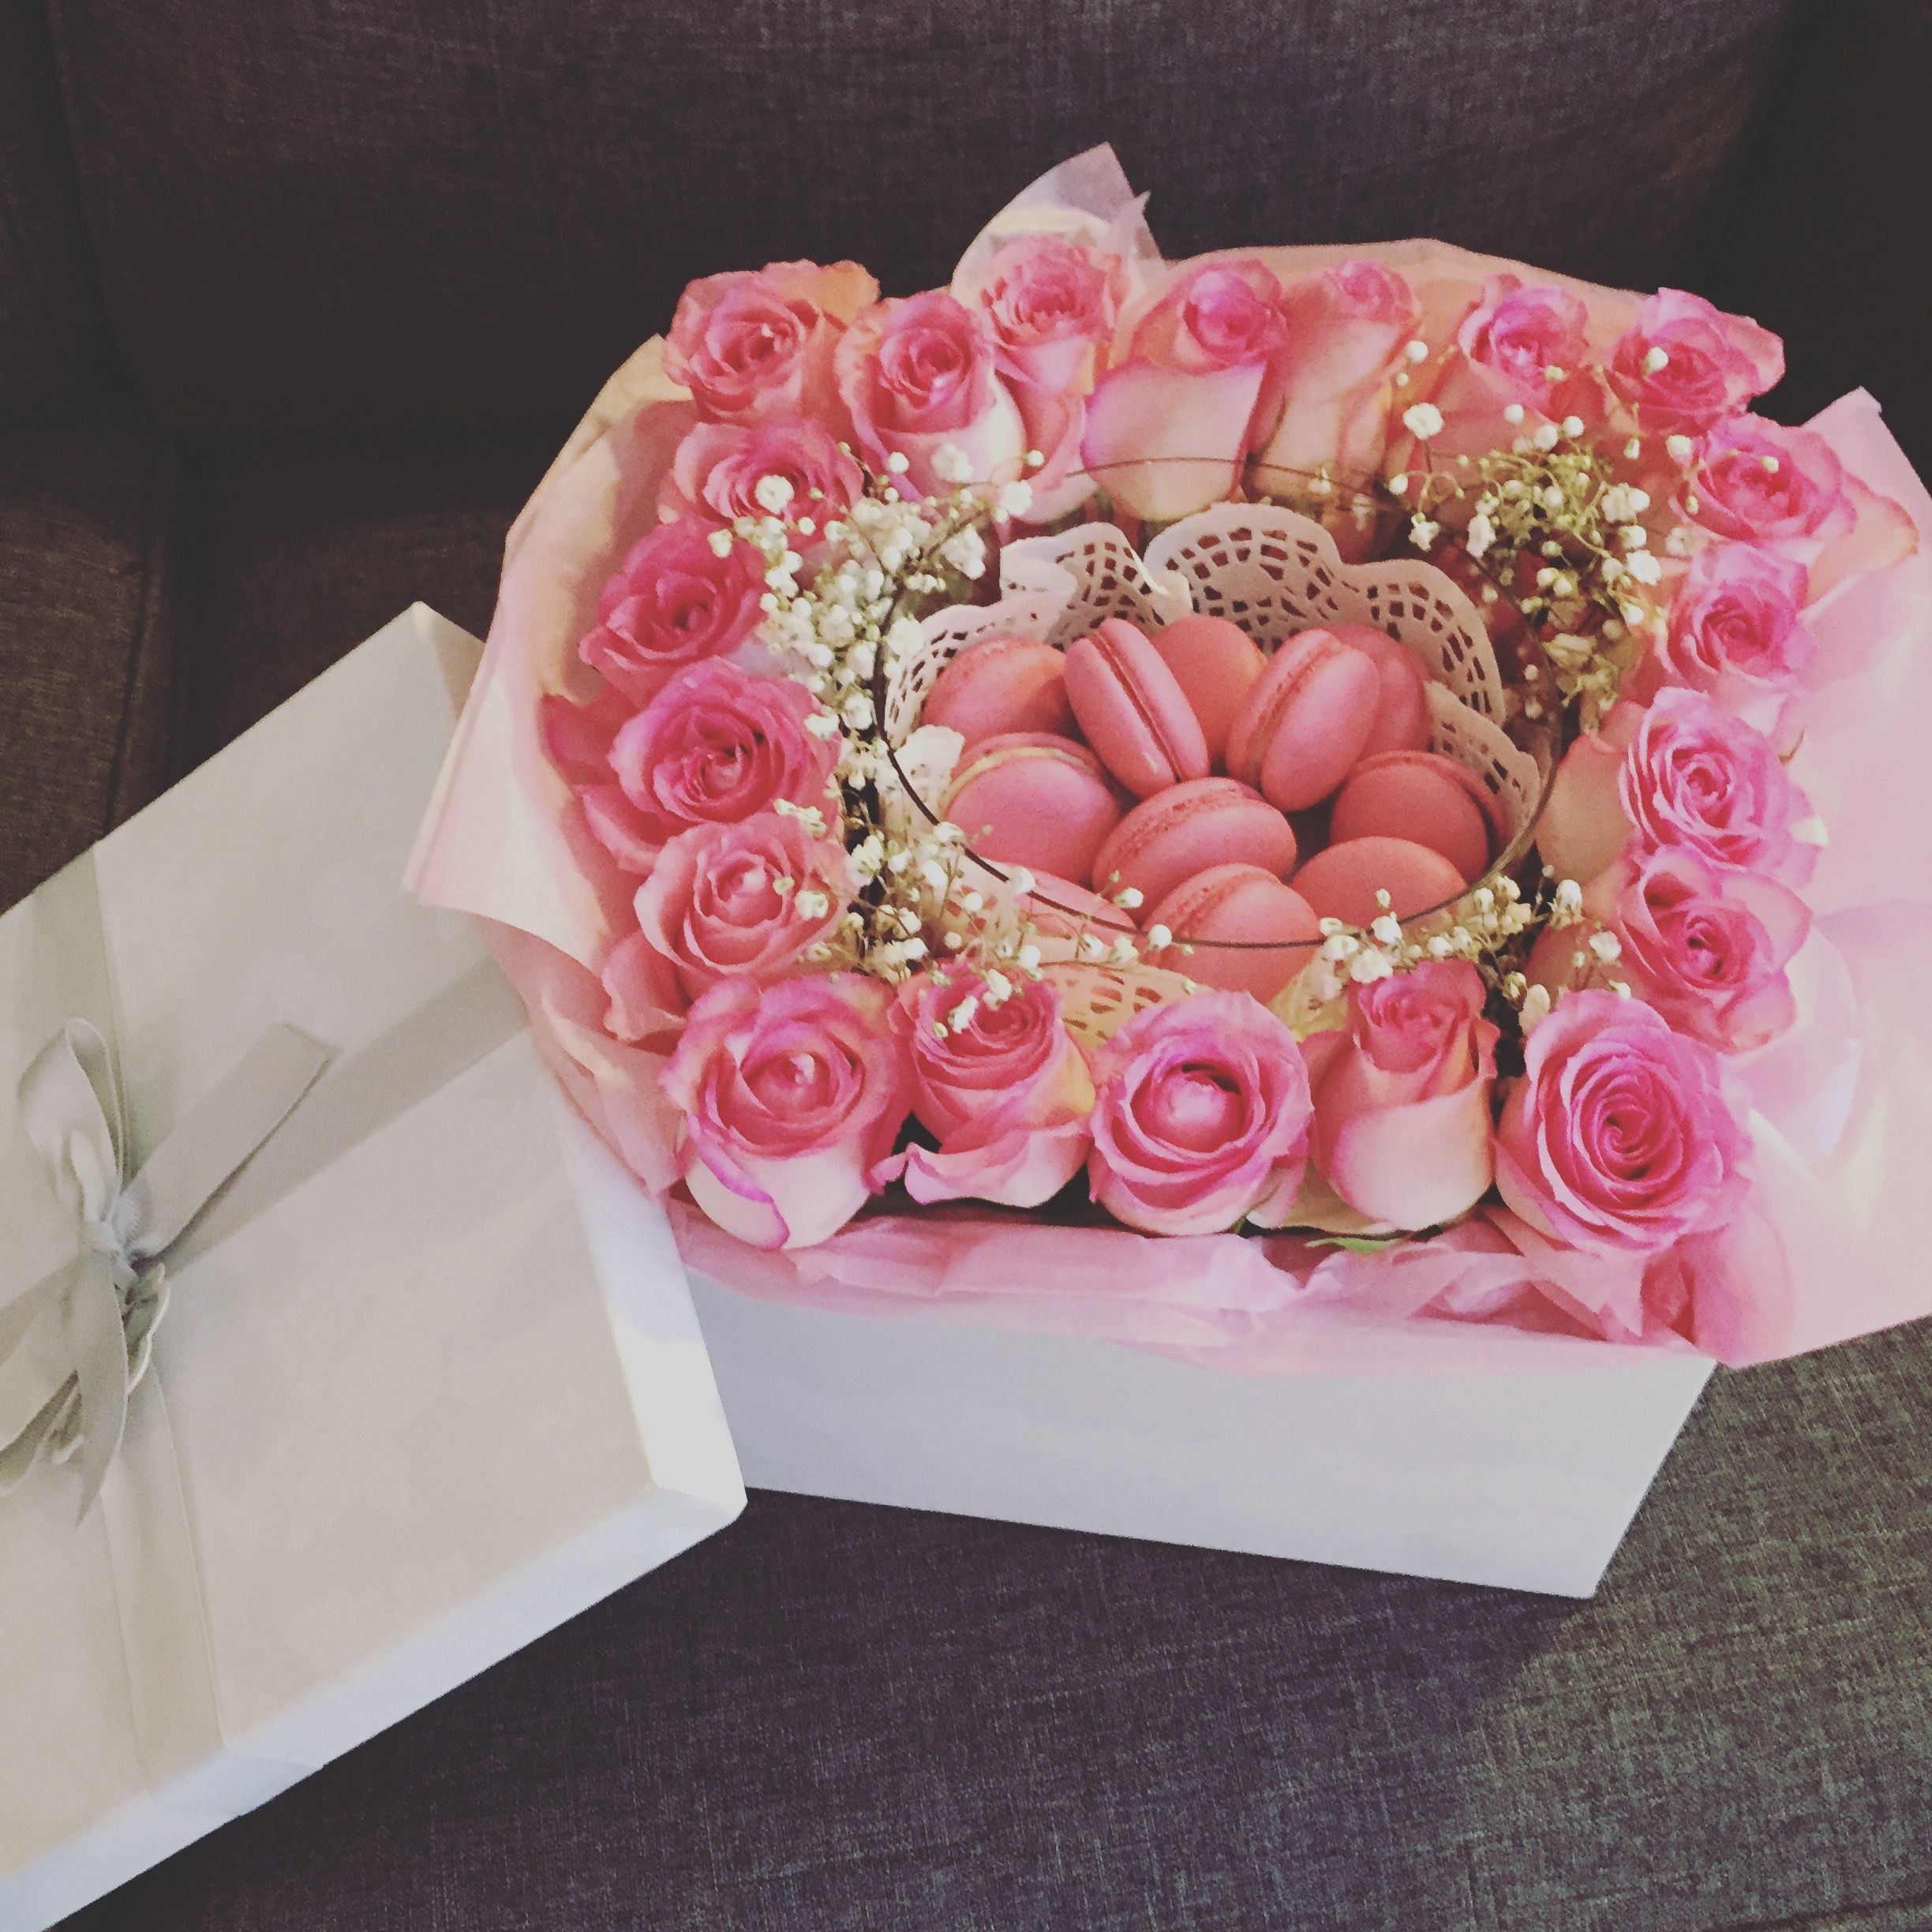 Flowers and macarons in a box with images flower box